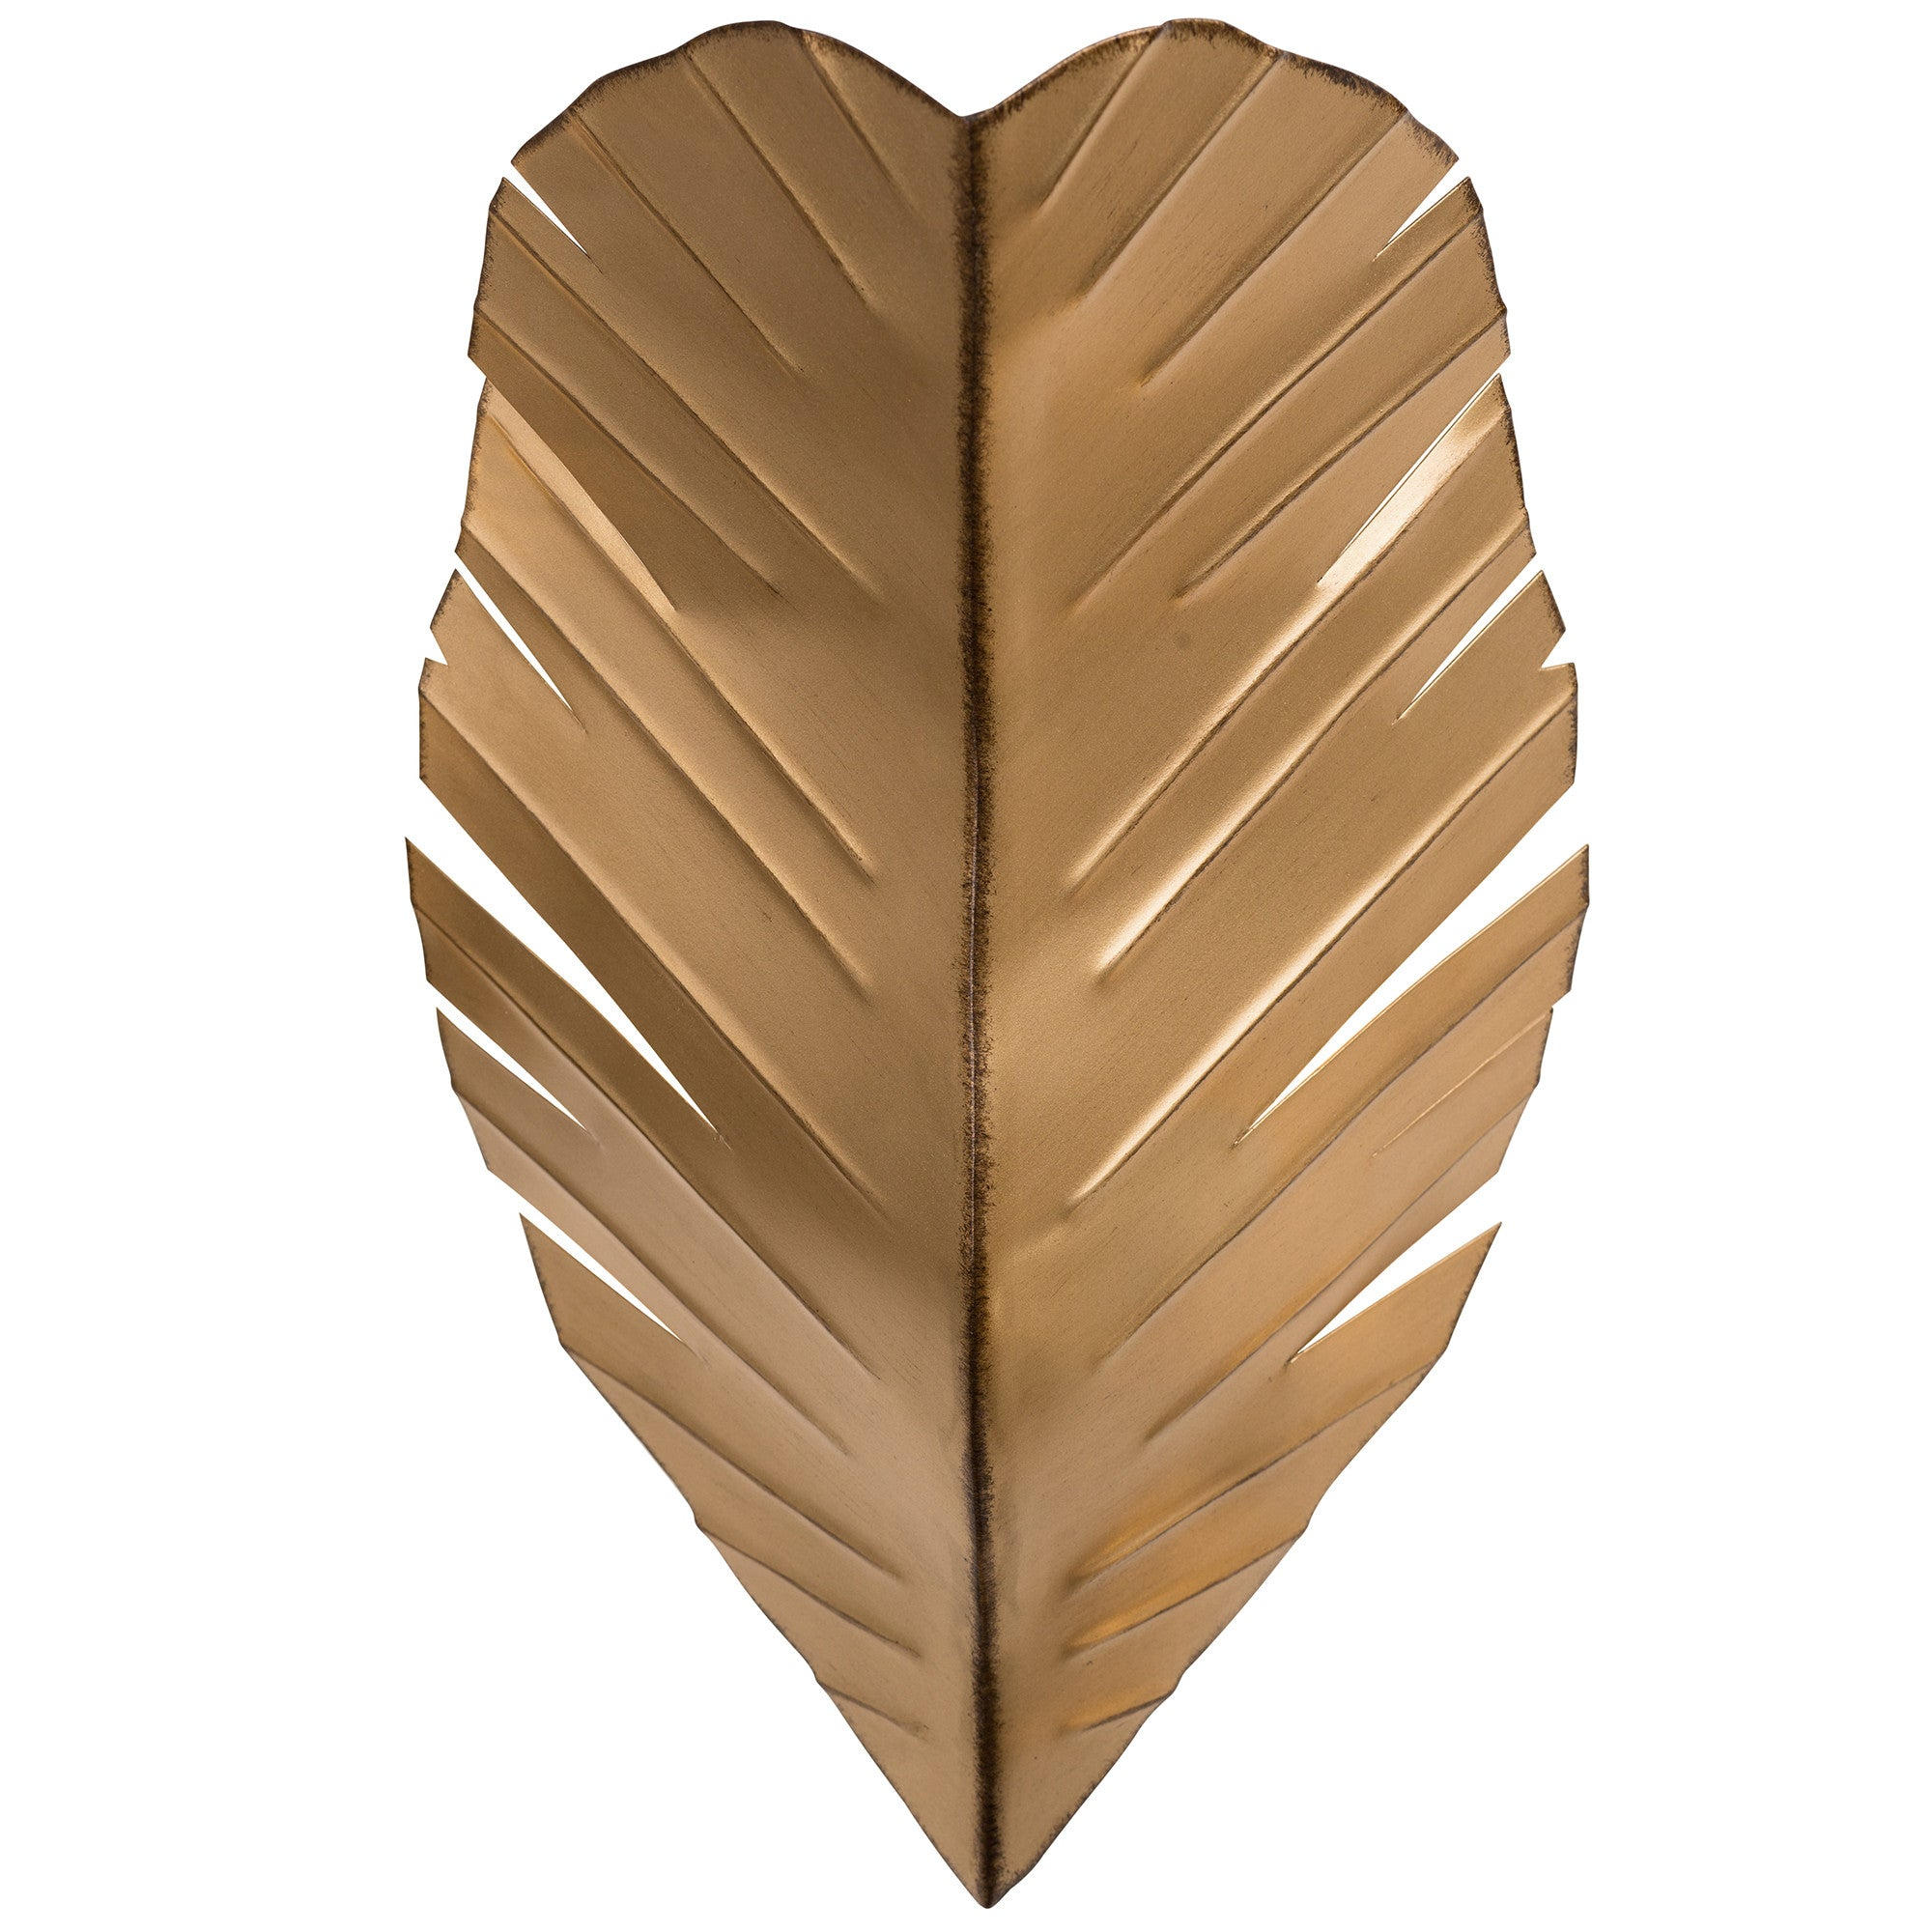 Banana Leaf 901K02GO 2-Lt Wall Sconce in hand-painted Gold finish